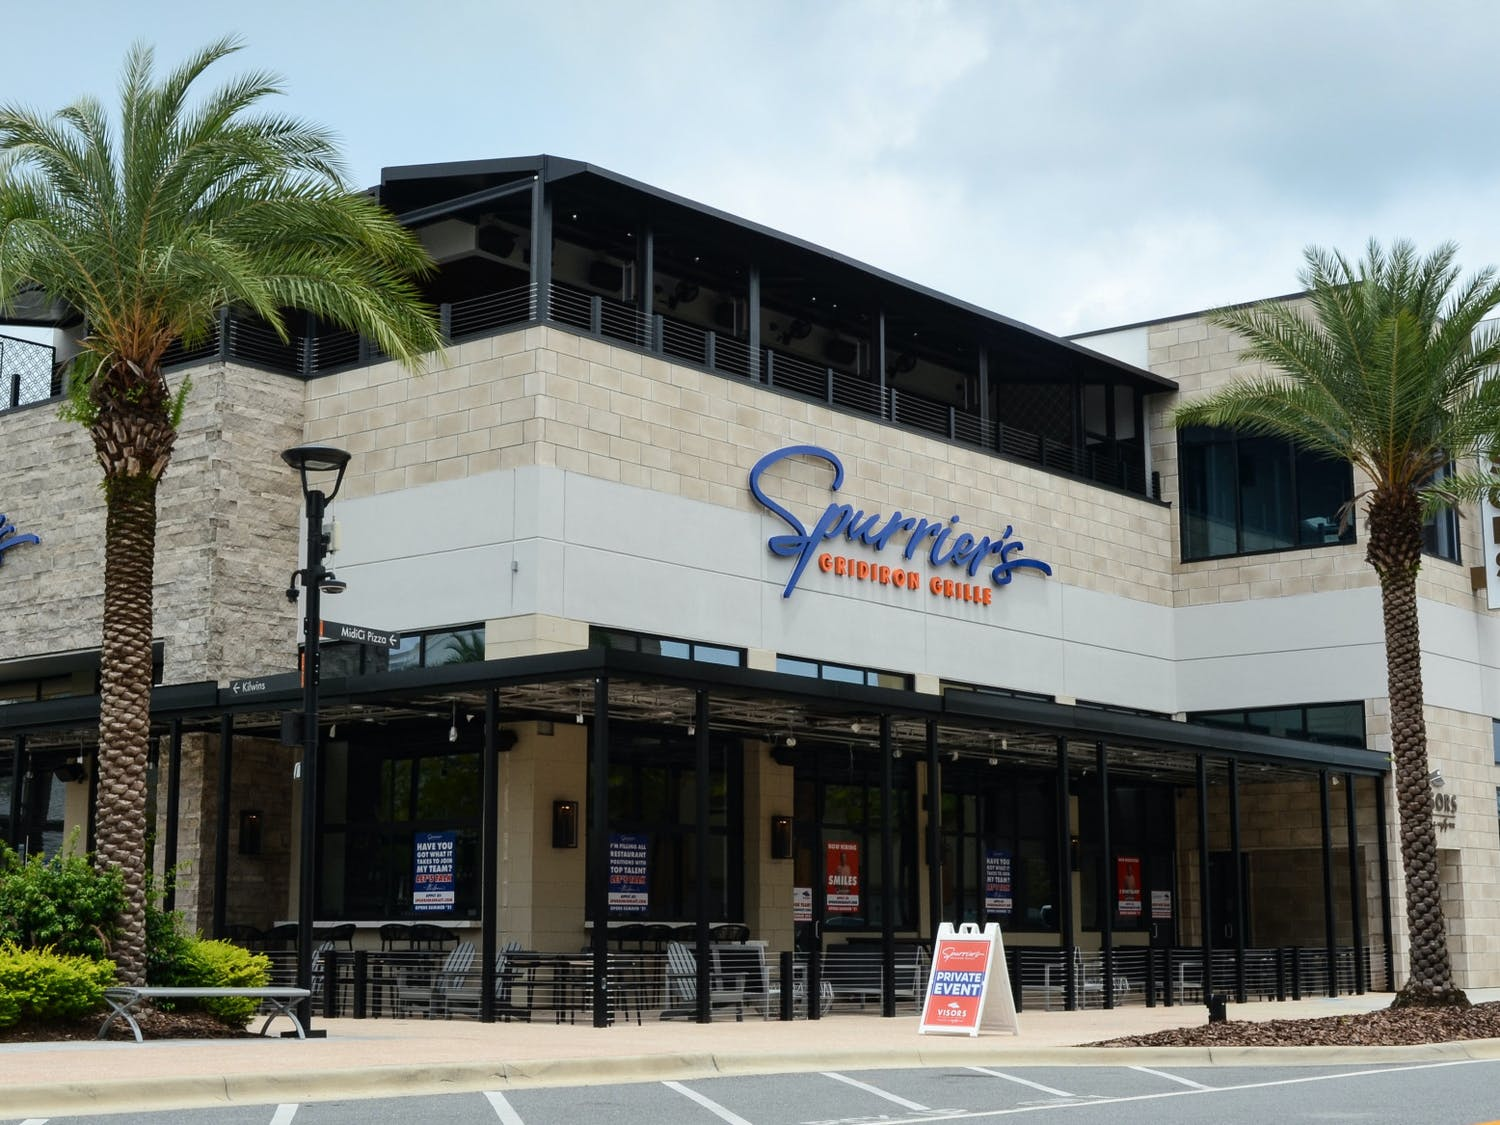 The Spurrier's Gridiron Grille and rooftop bar, as seen on Sunday, August 1, 2021, had to delay opening due to staffing issues. The restaurant, which is located at 4860 SW 31st Place in Gainesville, will open August 11.